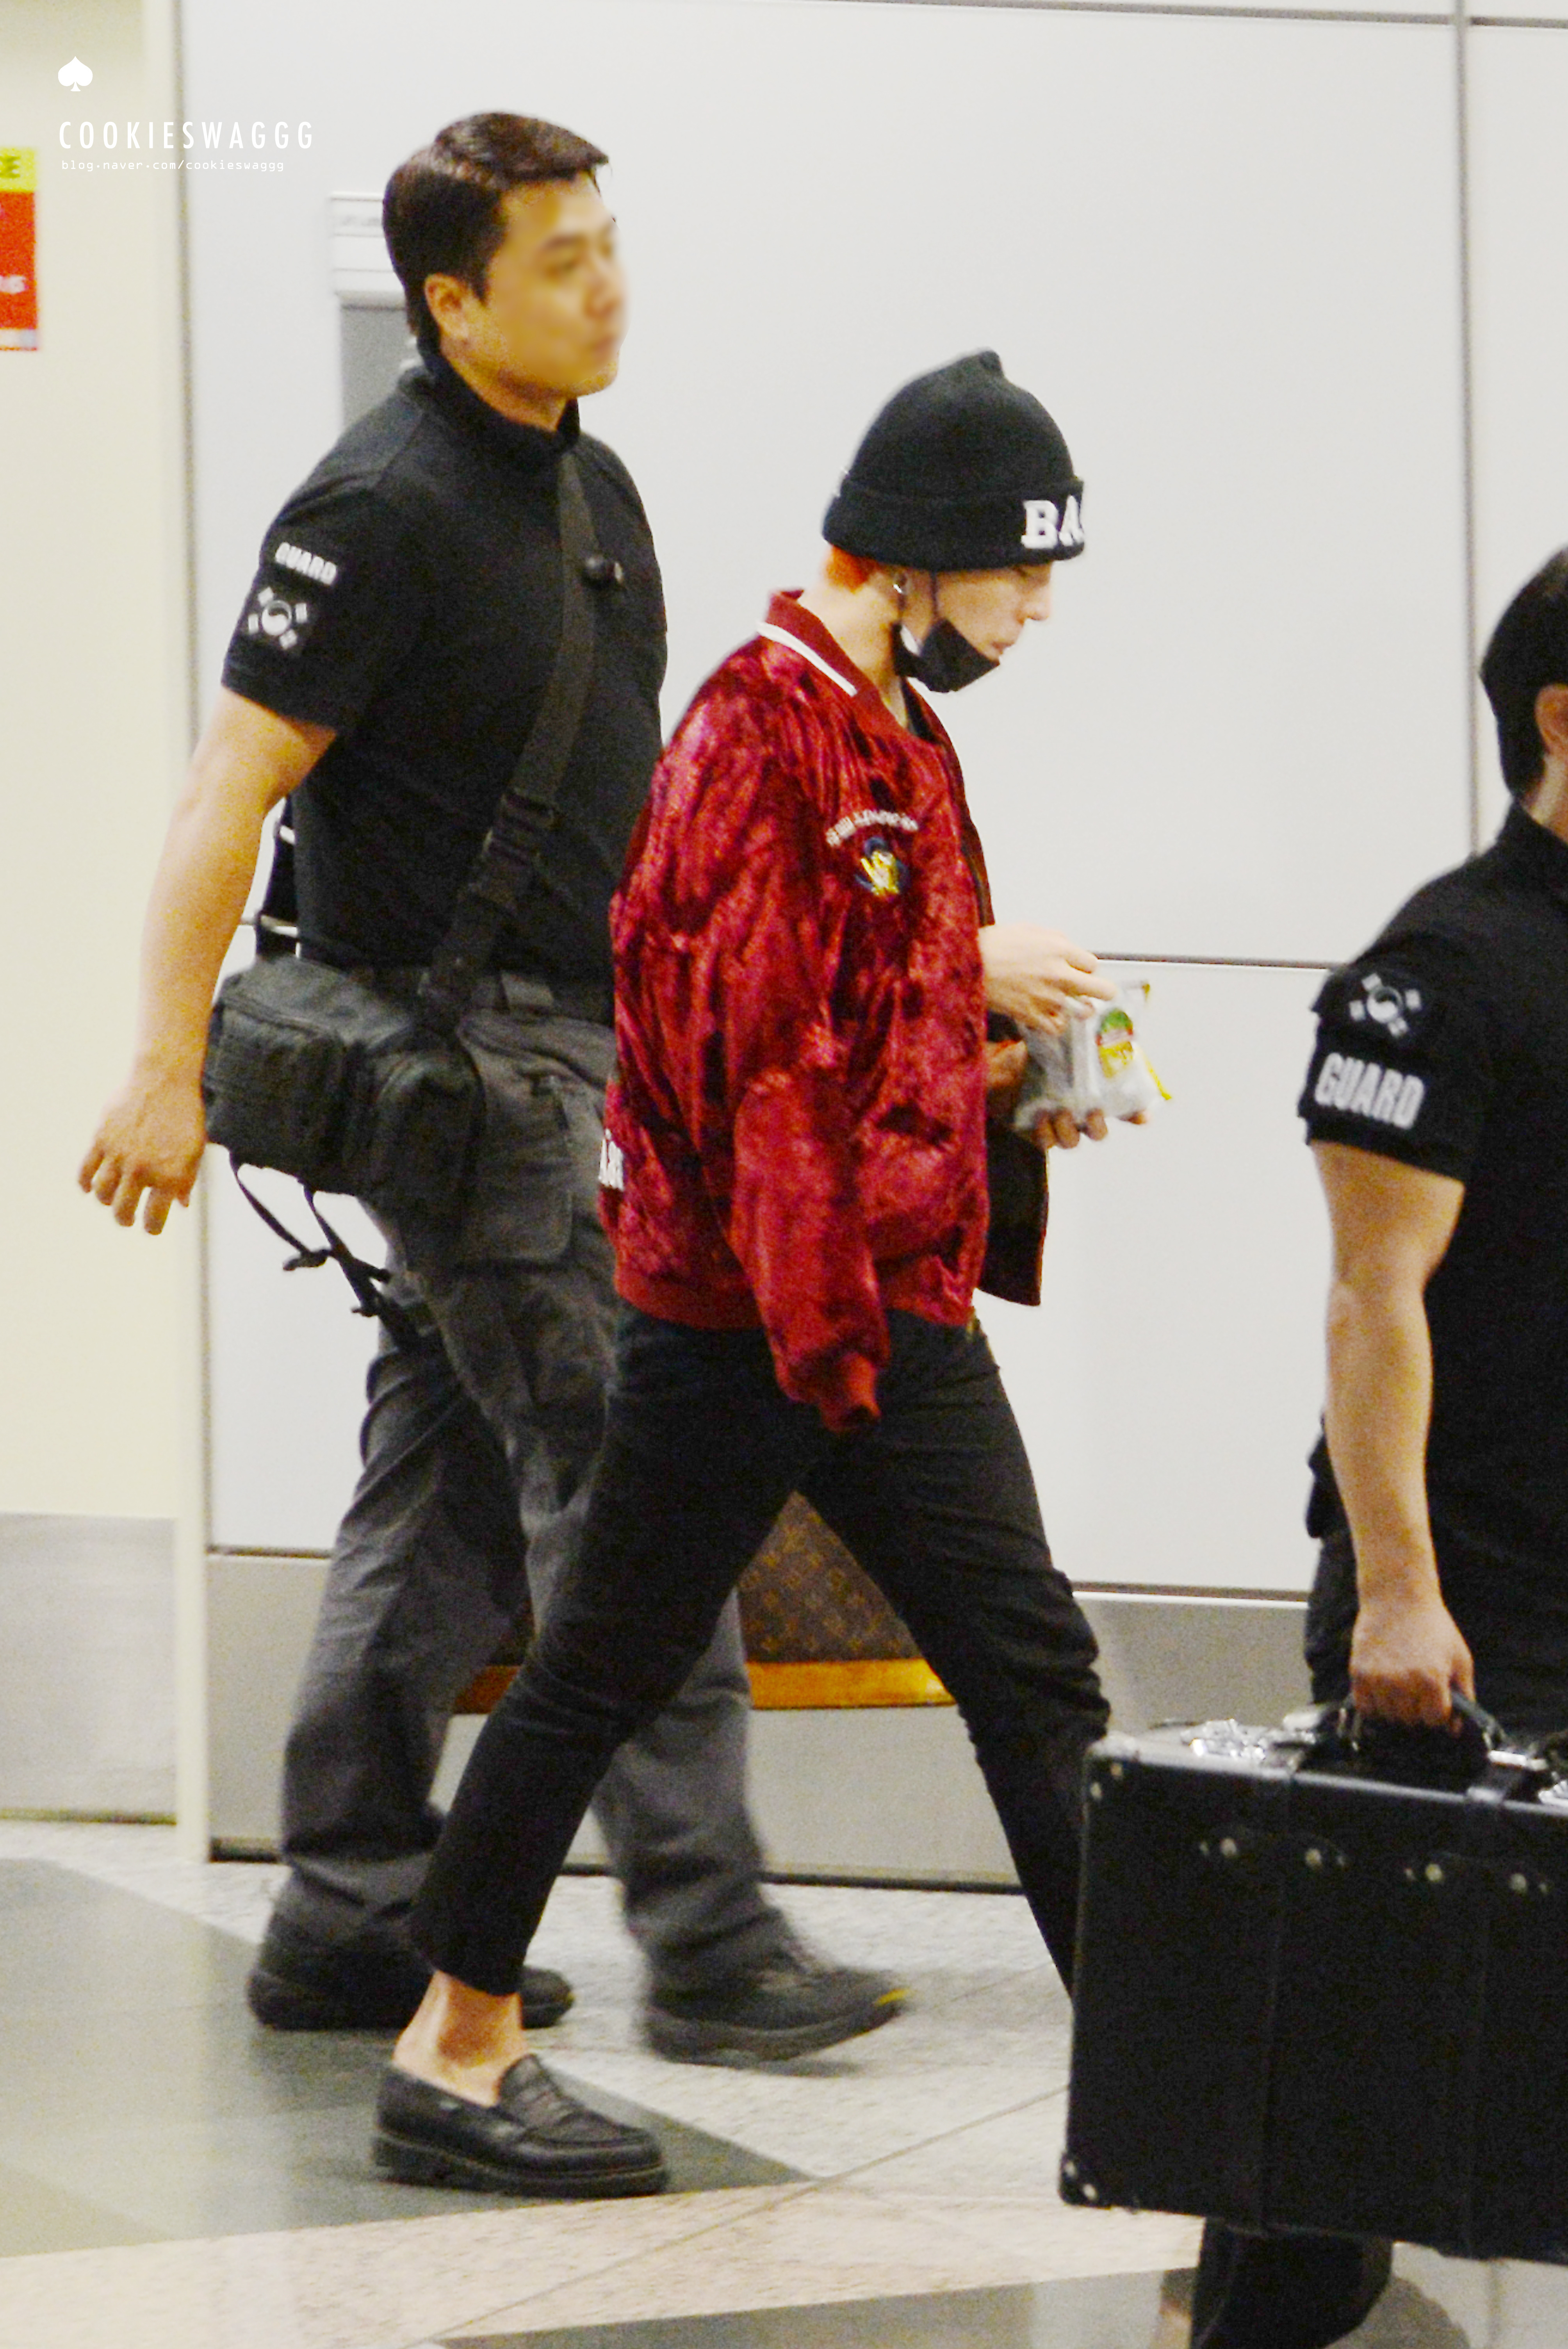 Big Bang - Malaysia Airport - 25jul2015 - cookieswaggg - 20.jpg